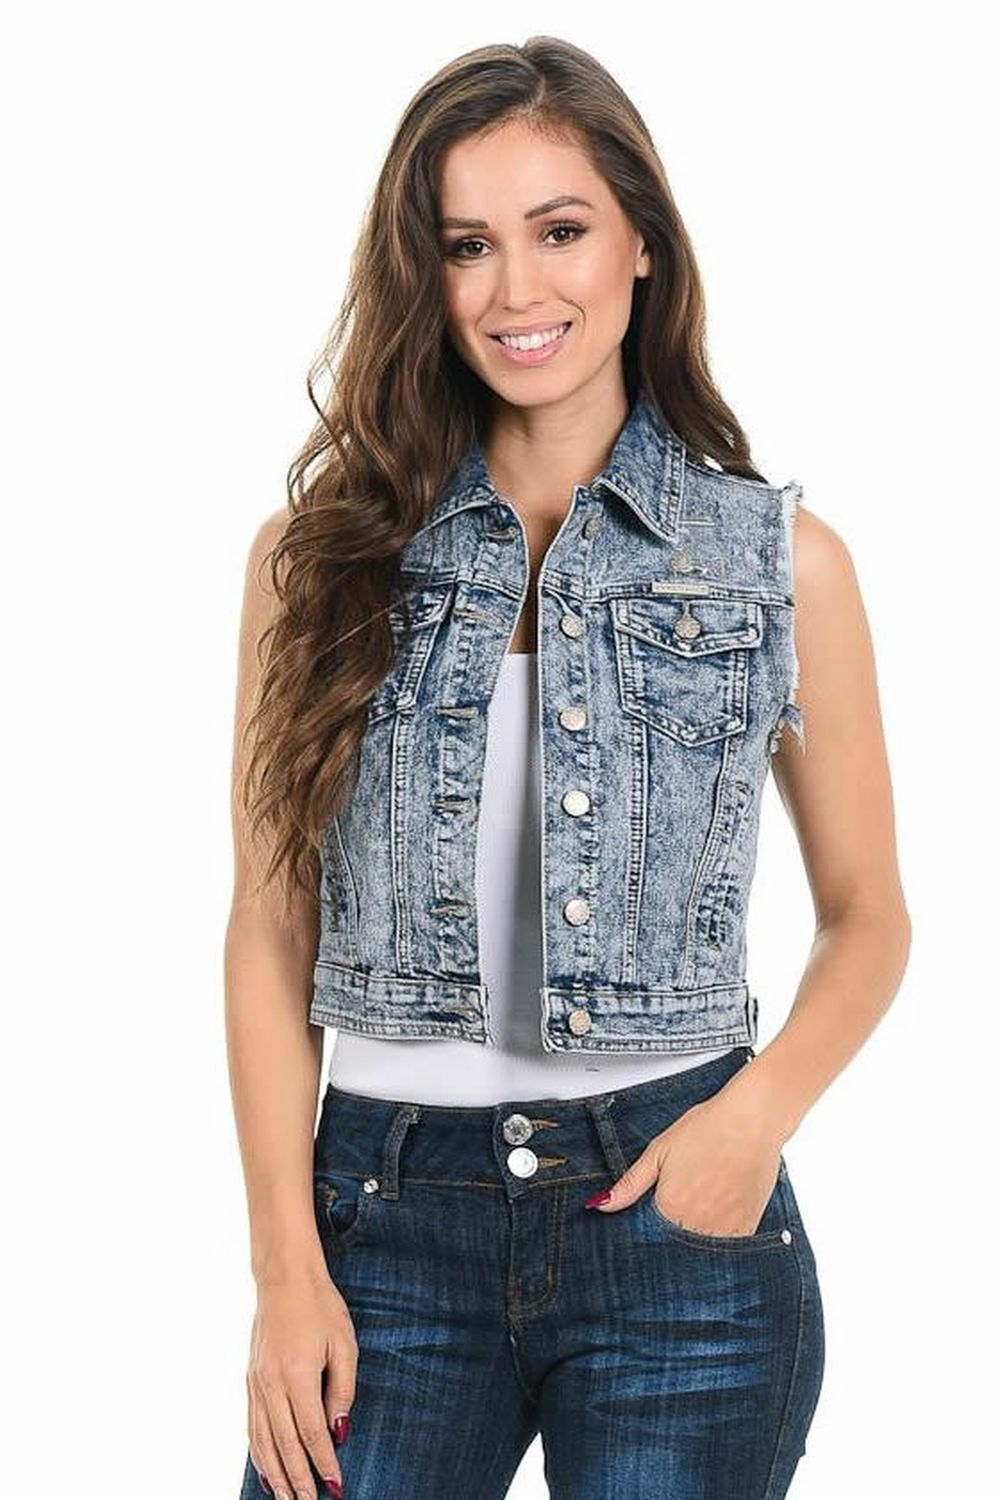 Sweet Look Women's Denim Vest - Winter Haven Co